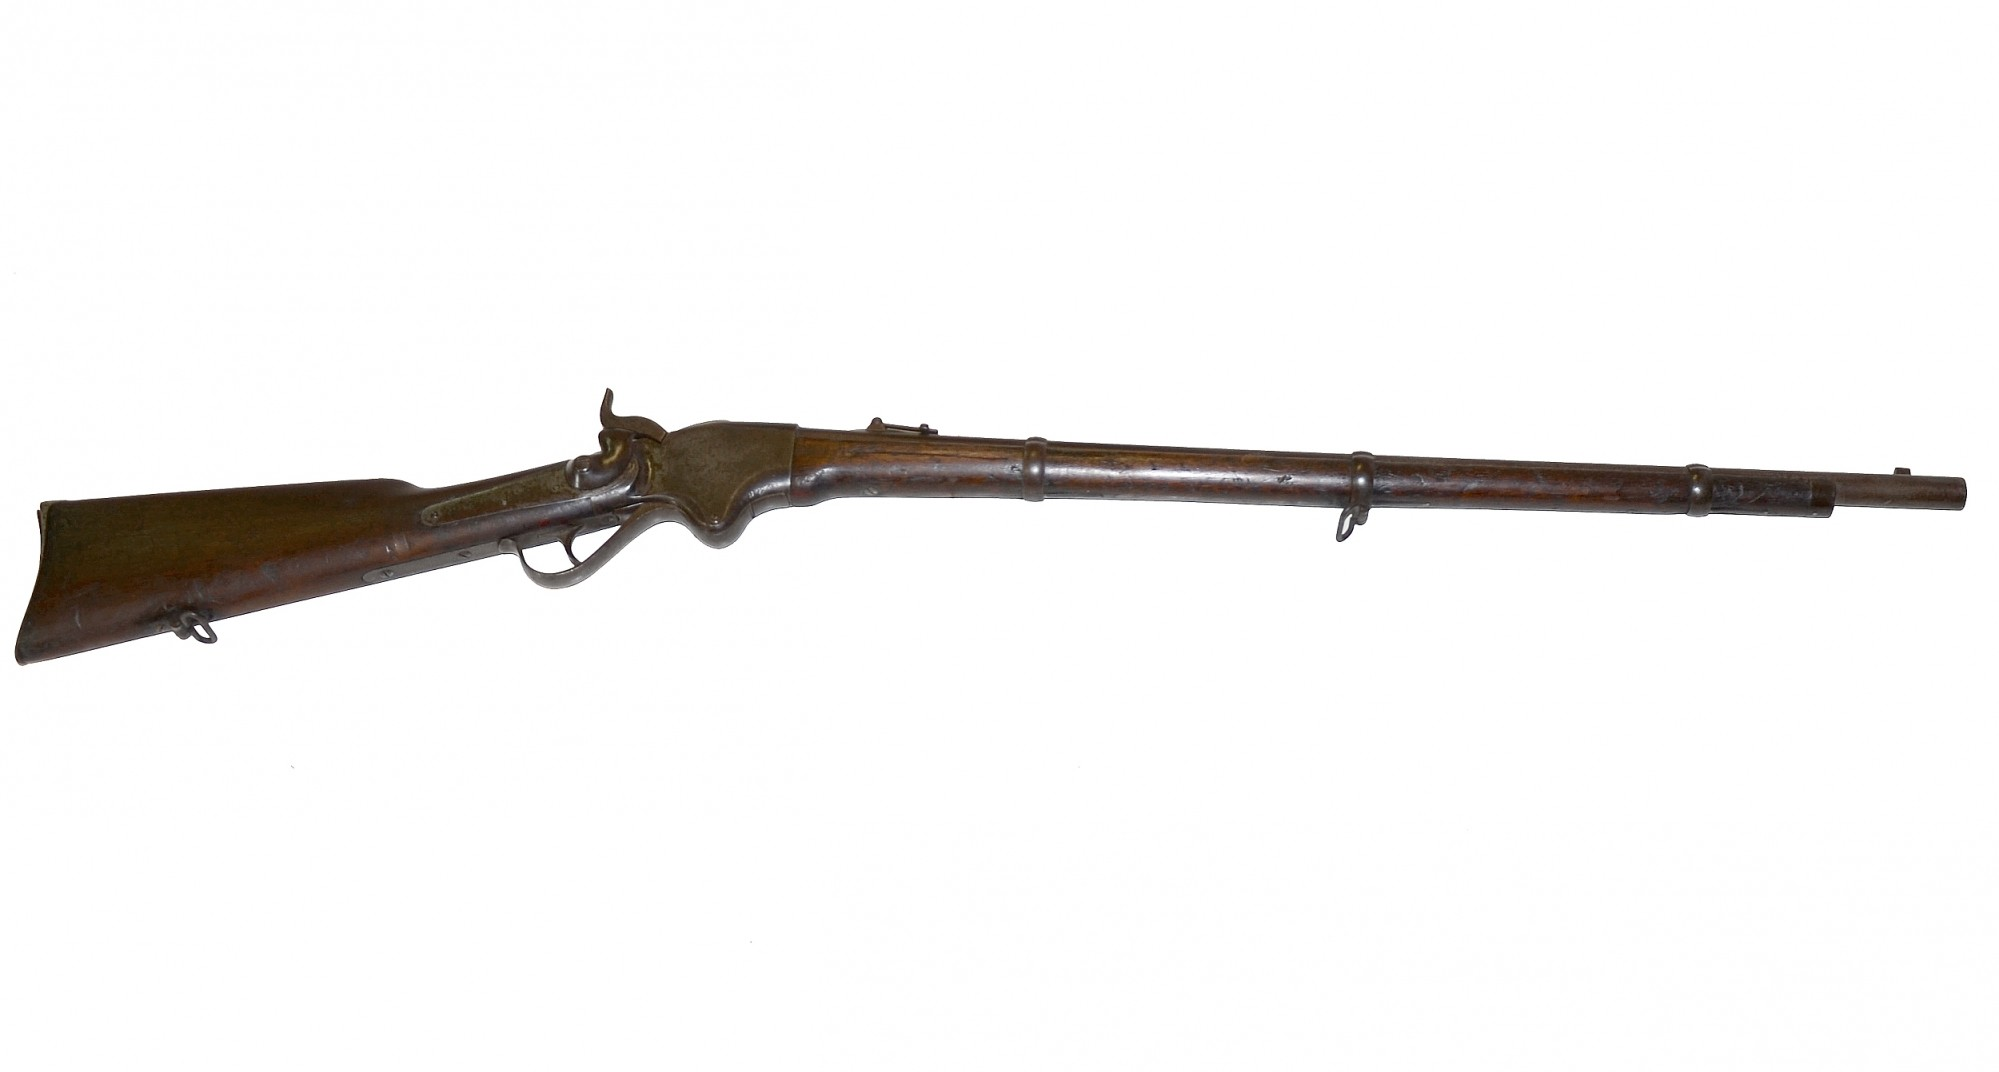 M1860 SPENCER RIFLE THAT BELONGED TO ROBERT MEEK, 5TH INDEPENDENT COMPANY, OHIO SHARPSHOOTERS